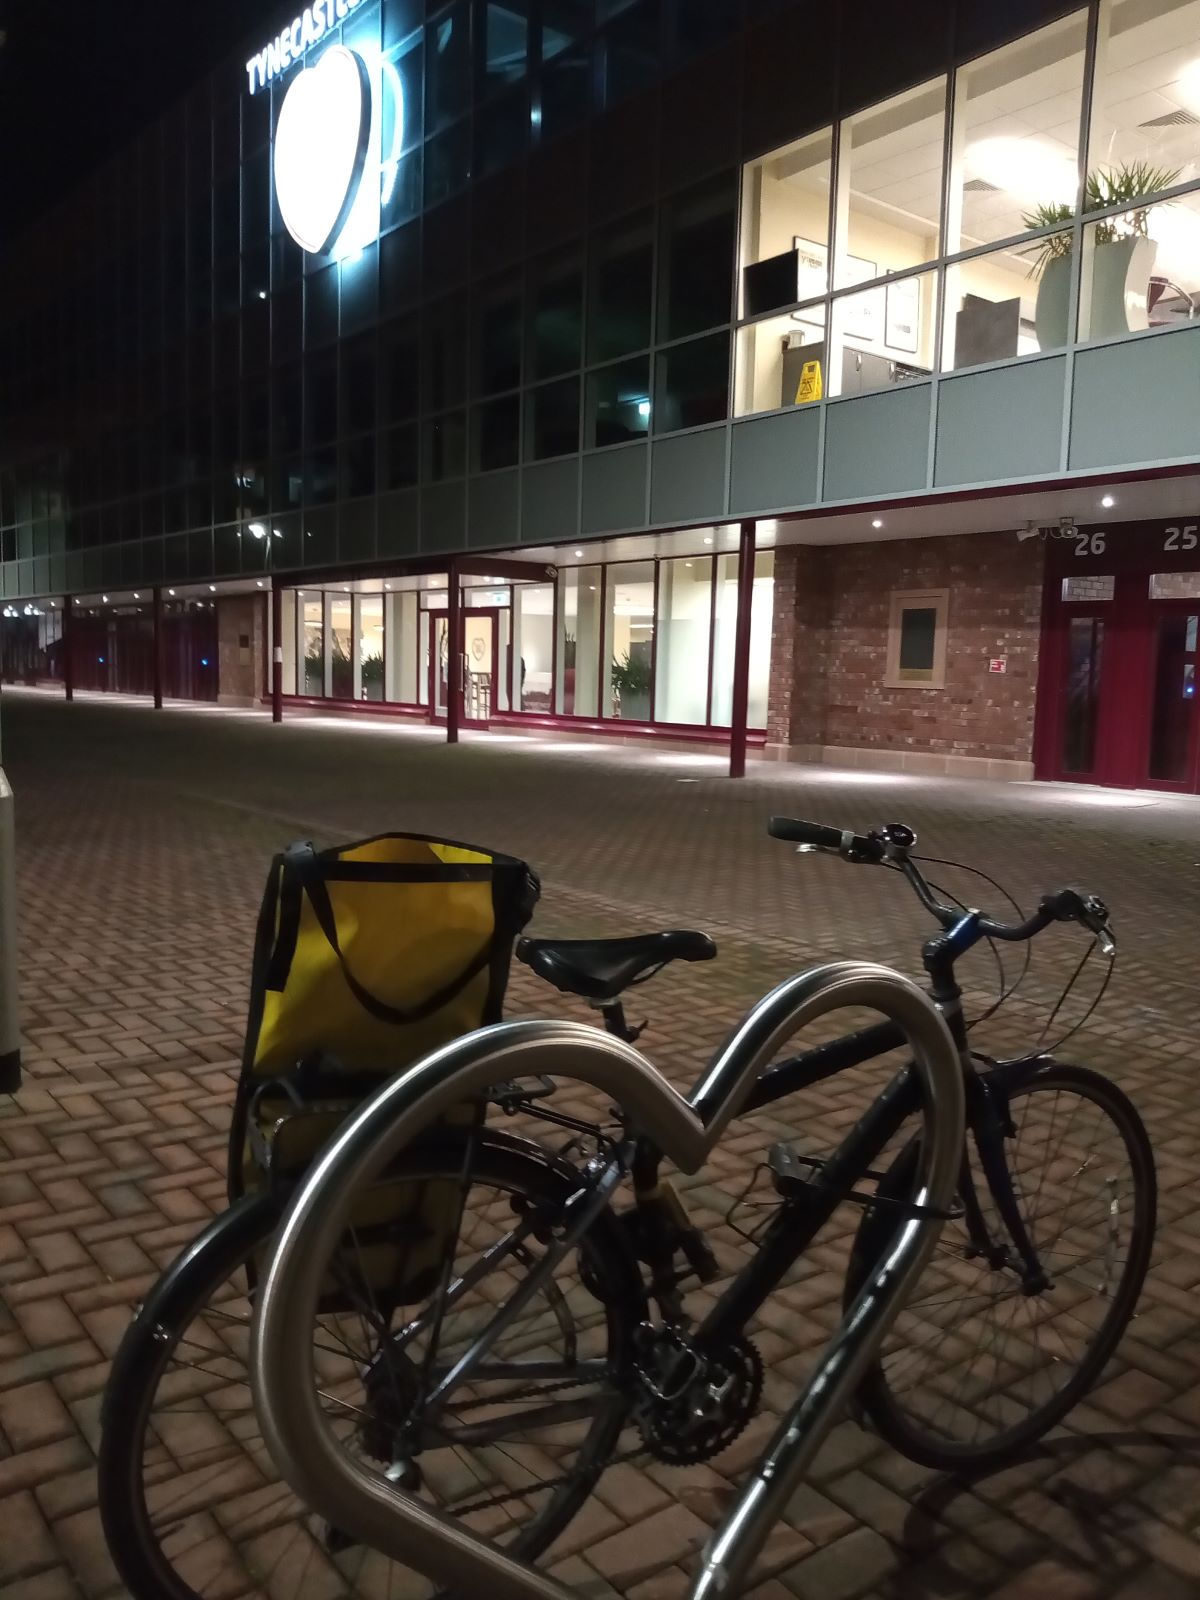 Bike parked outside Tynecastle park